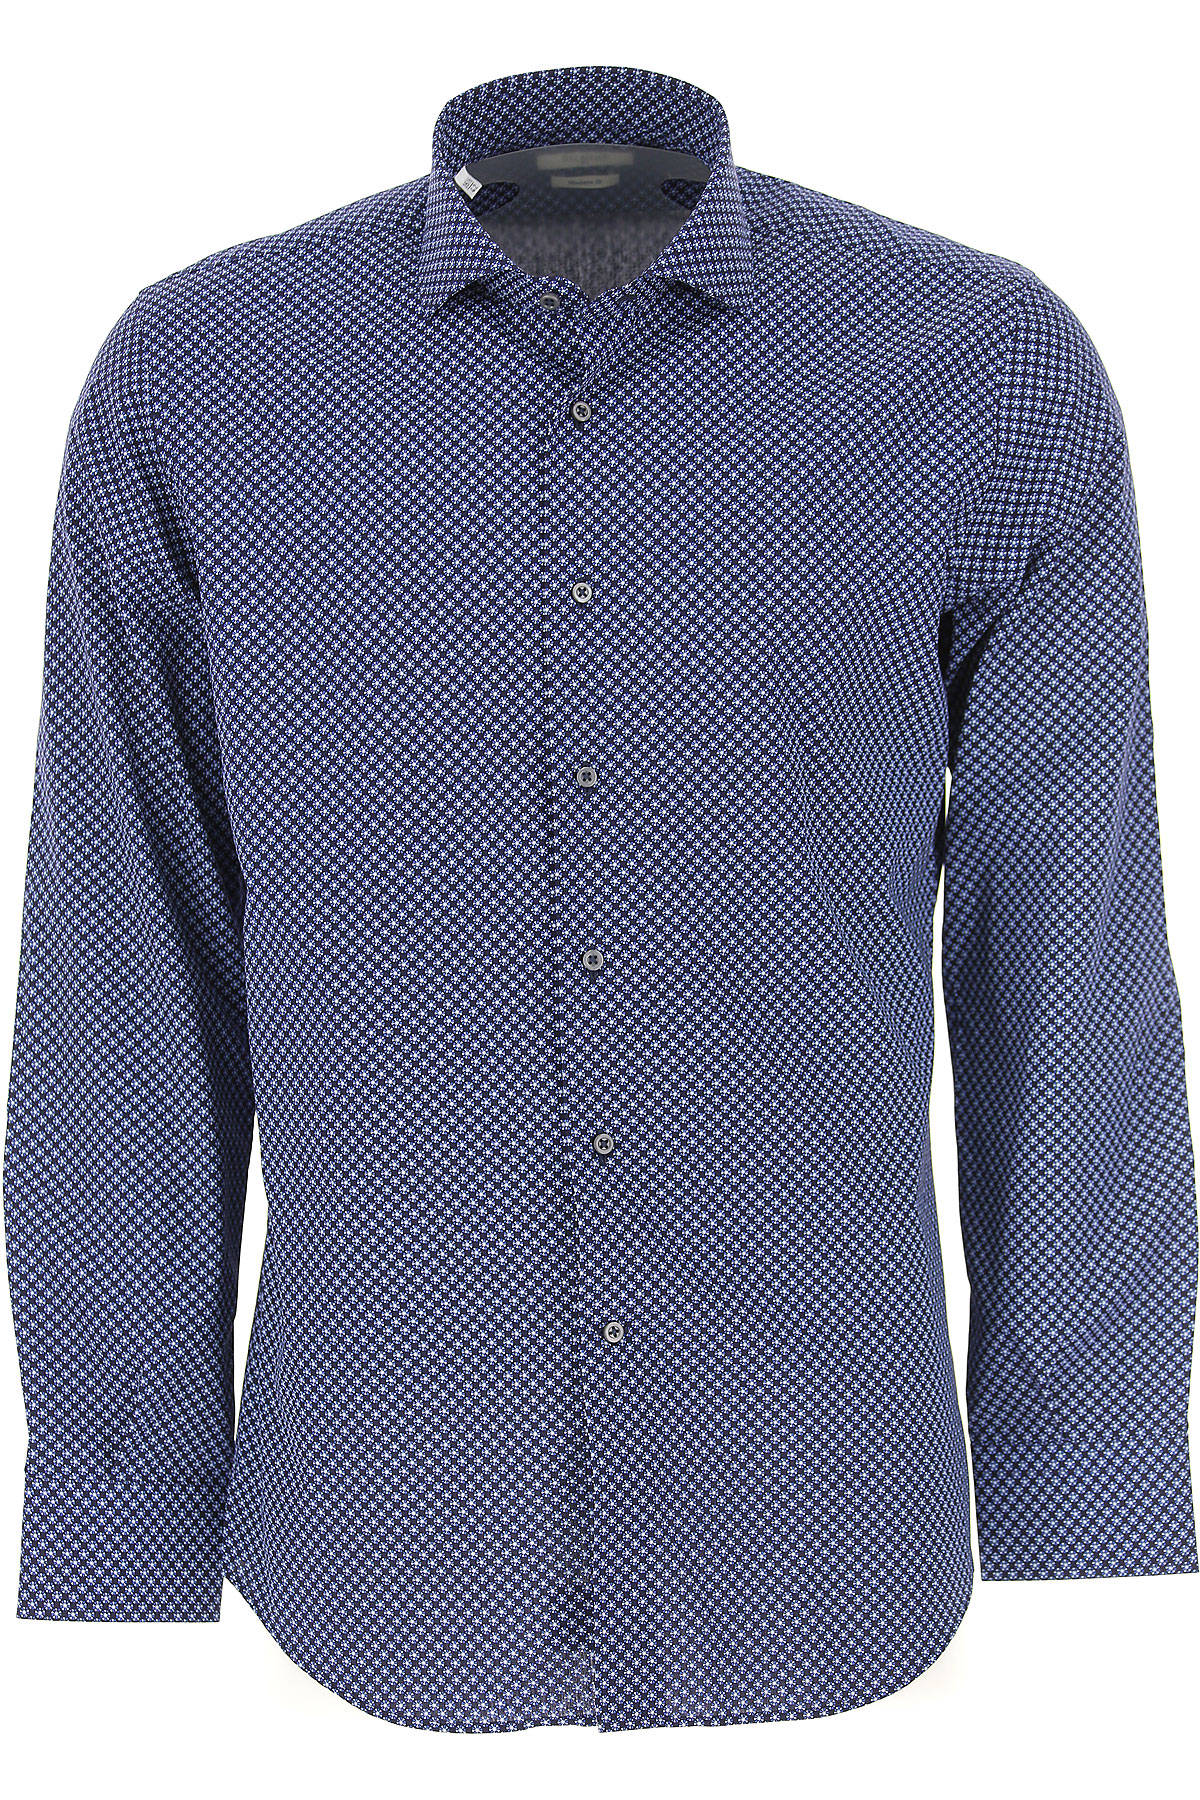 Image of Del Siena Shirt for Men, Blue, Cotton, 2017, 15.75 16 17 17.5